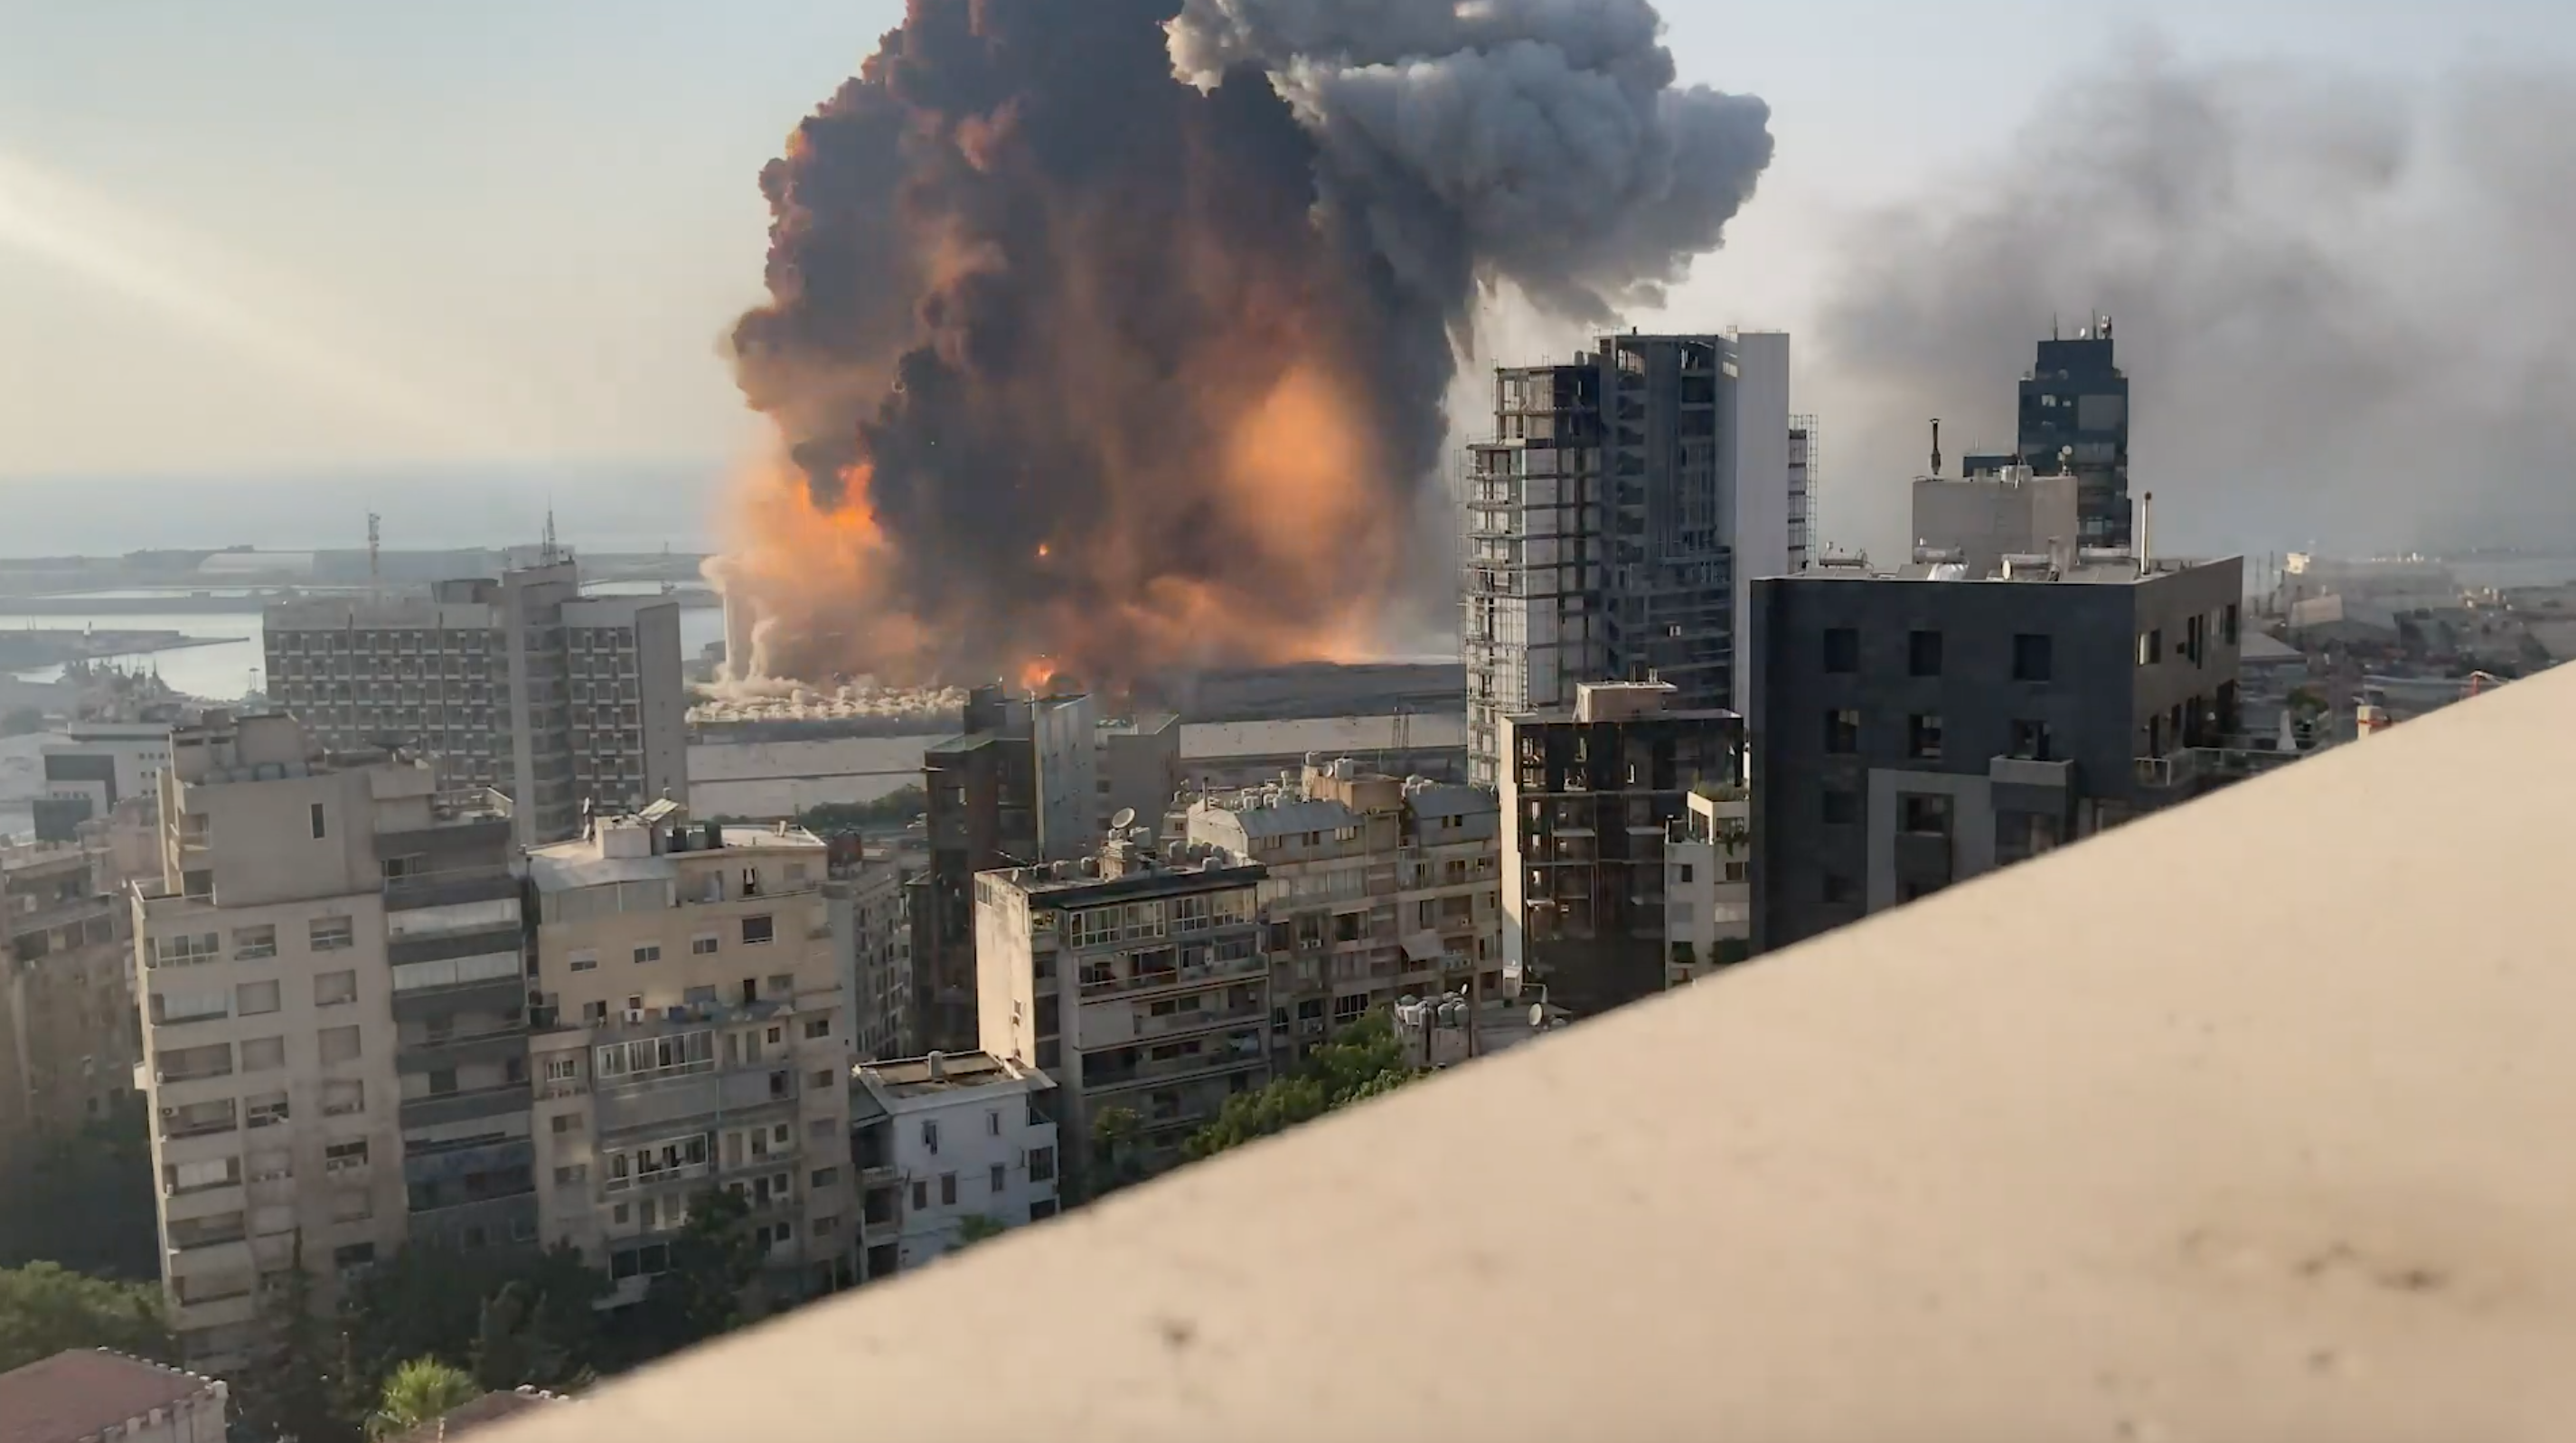 Beirut explosion: the shocking moments caught on video